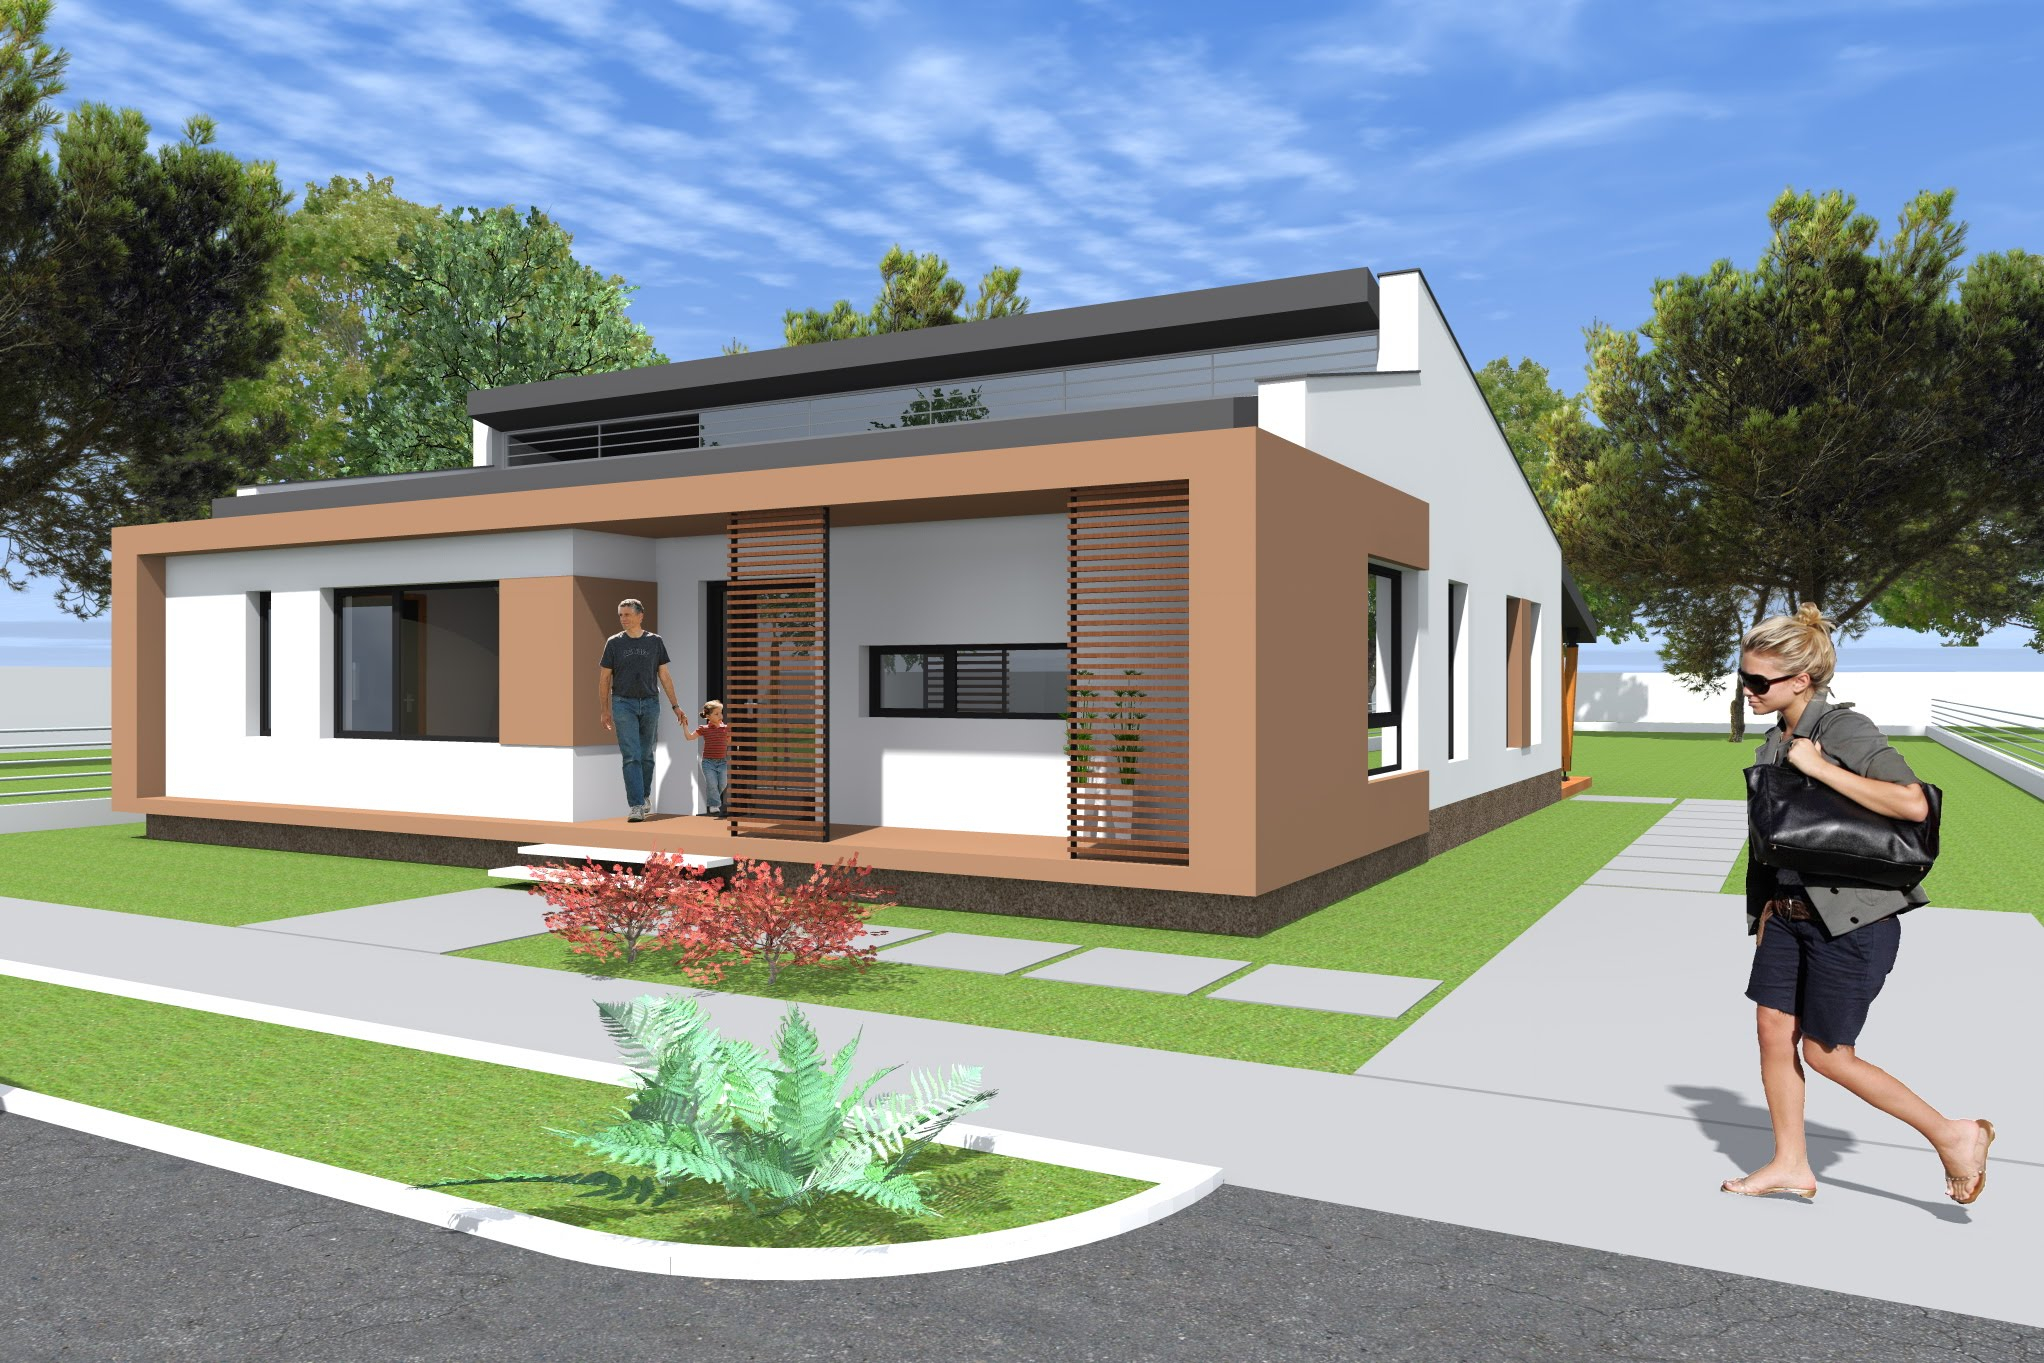 Inspirational Small Modern Bungalow House Design. 133 Square Meters (1431 Sq Feet pertaining to Inspirational Small Bungalow